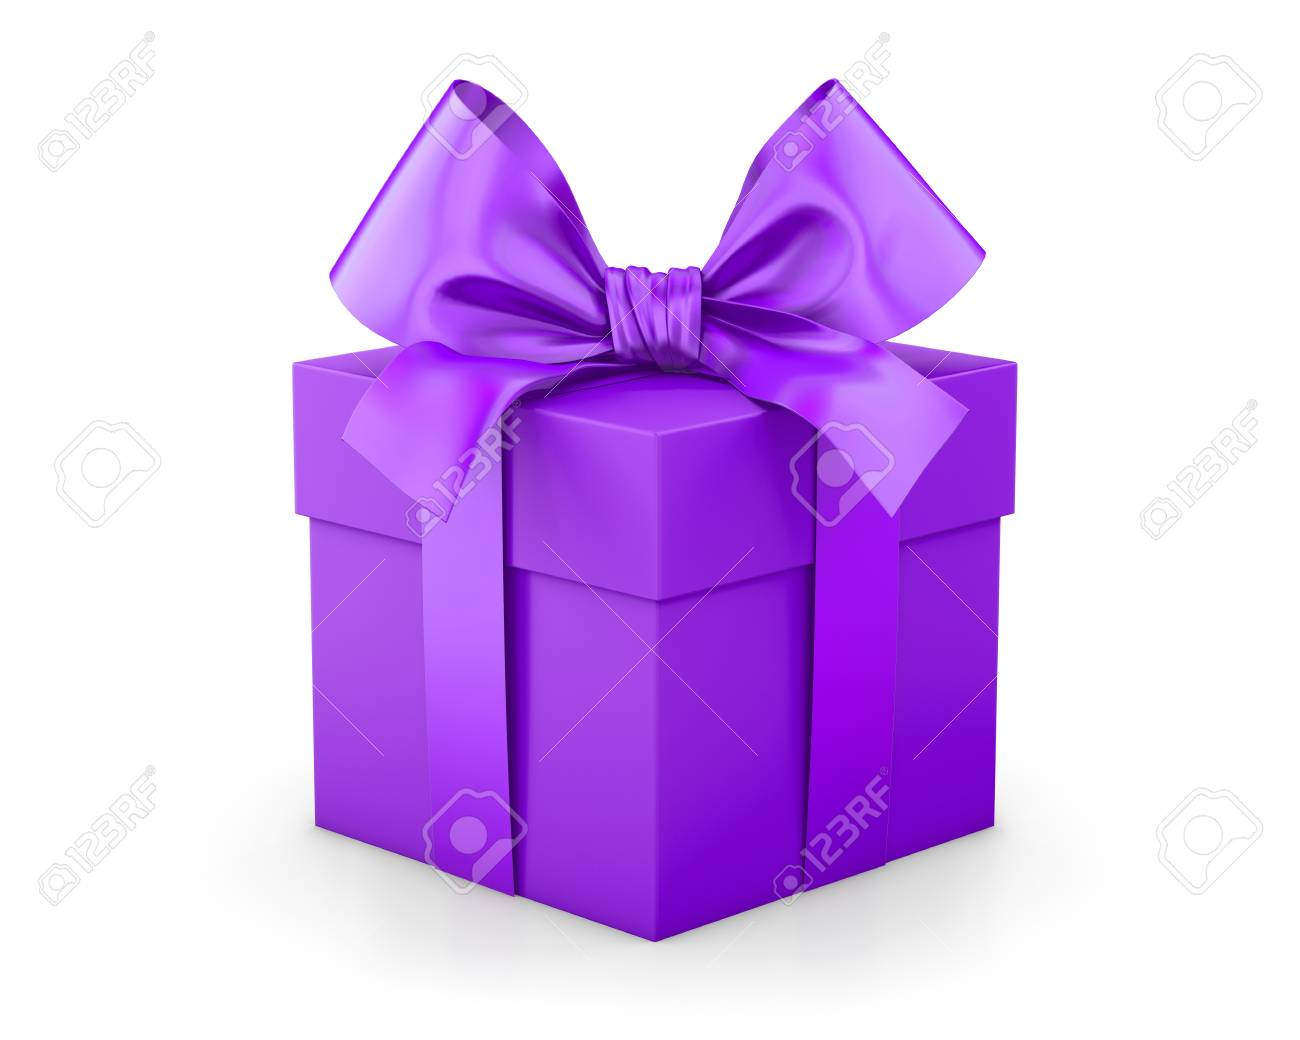 Purple gift box for Christmas New Yearu0027s Day 3d rendering Stock Photo - 73551530  sc 1 st  123RF.com : purple gift boxes - princetonregatta.org